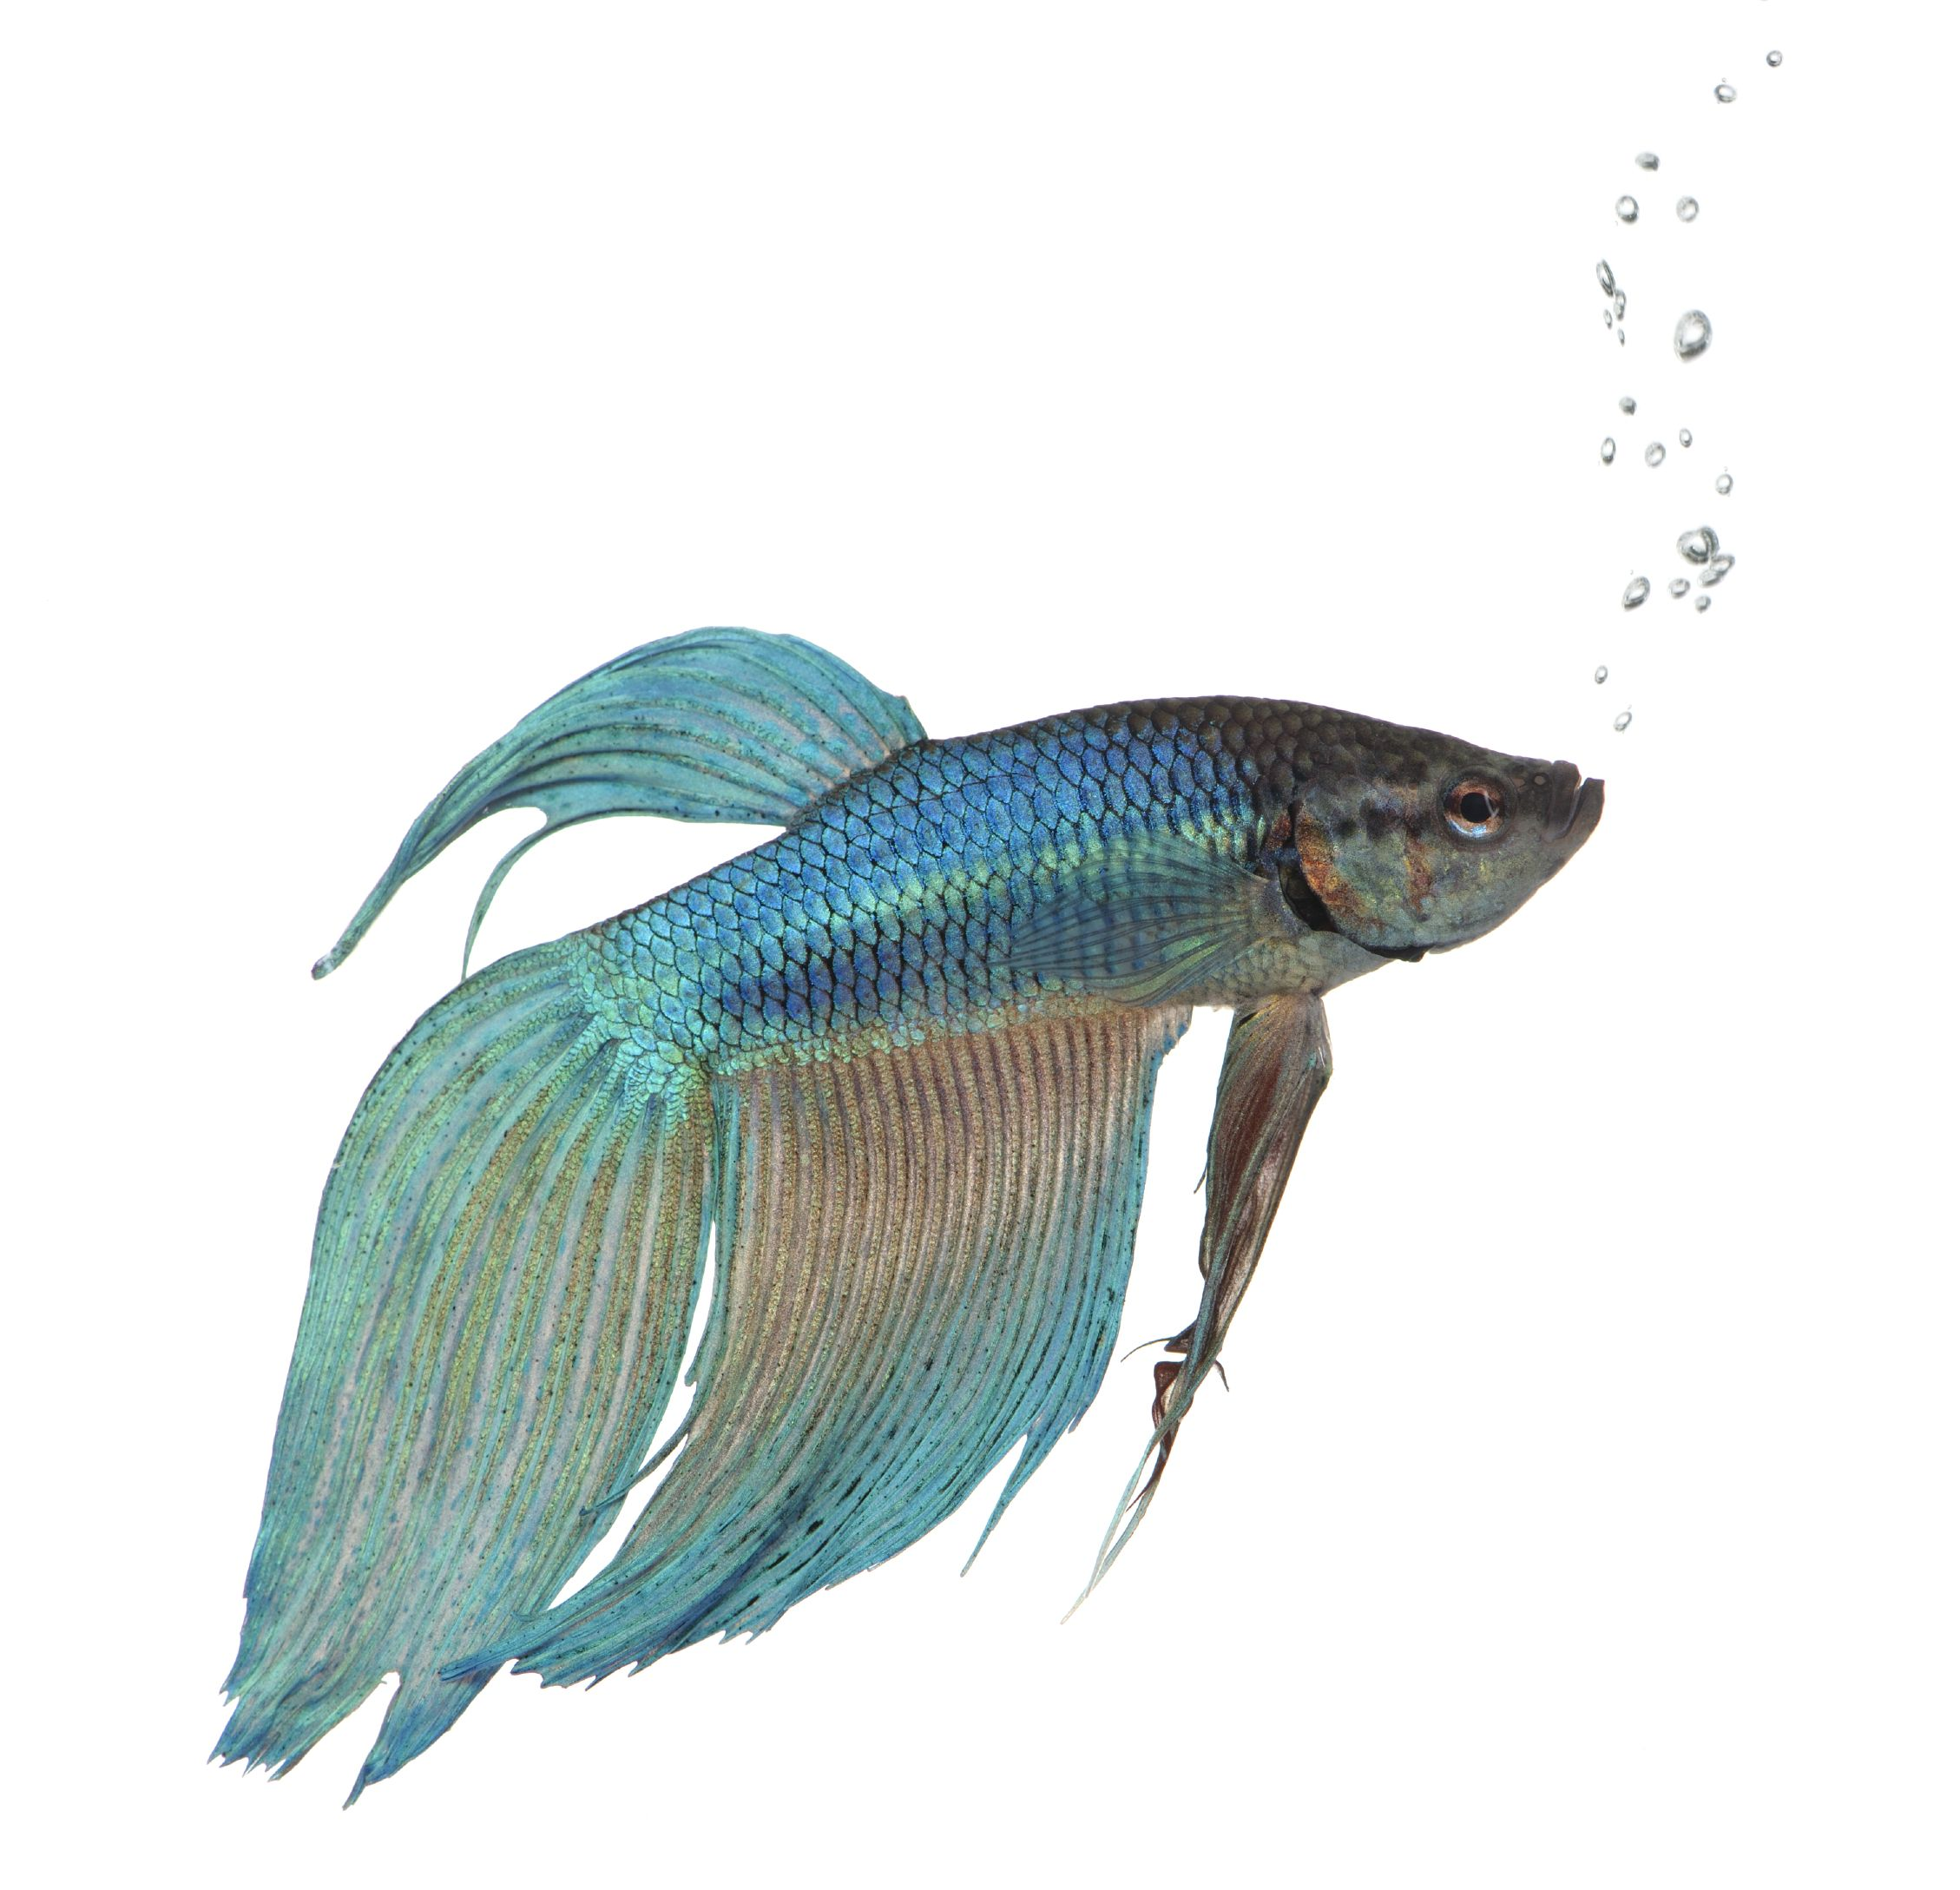 15+ List Different Types of Betta Fish with Pictures